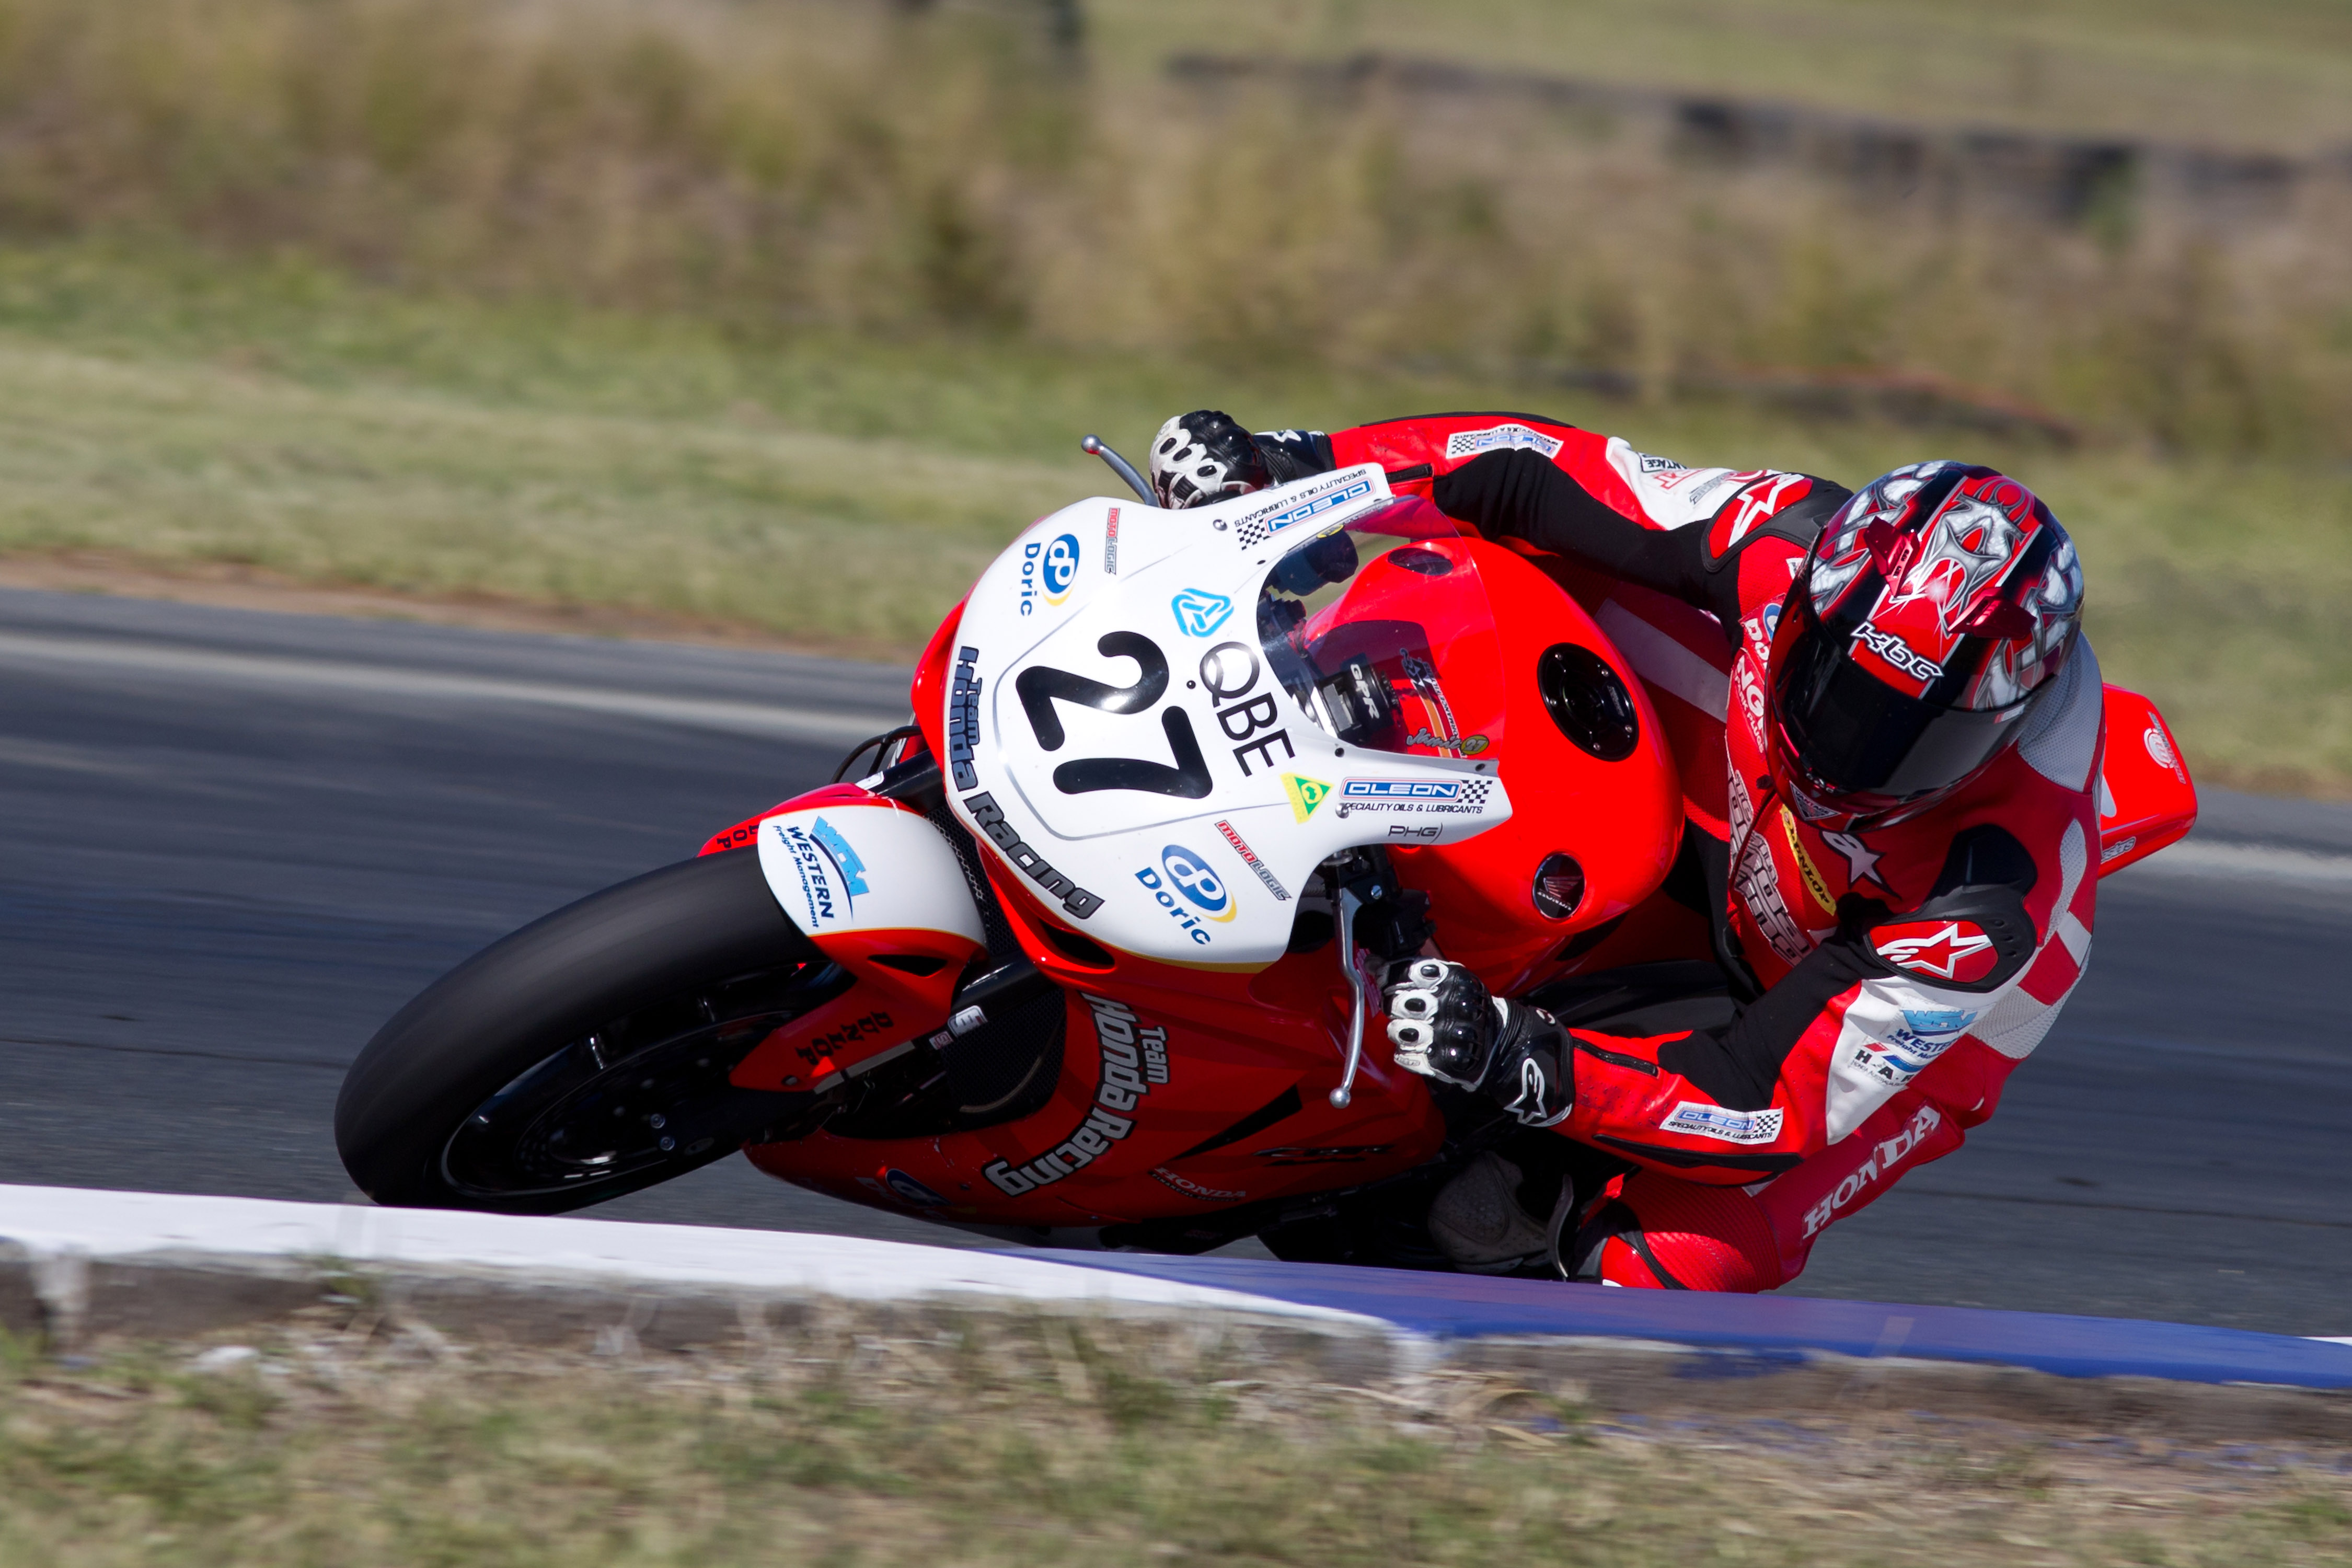 Stauffer takes Superpole in Queensland